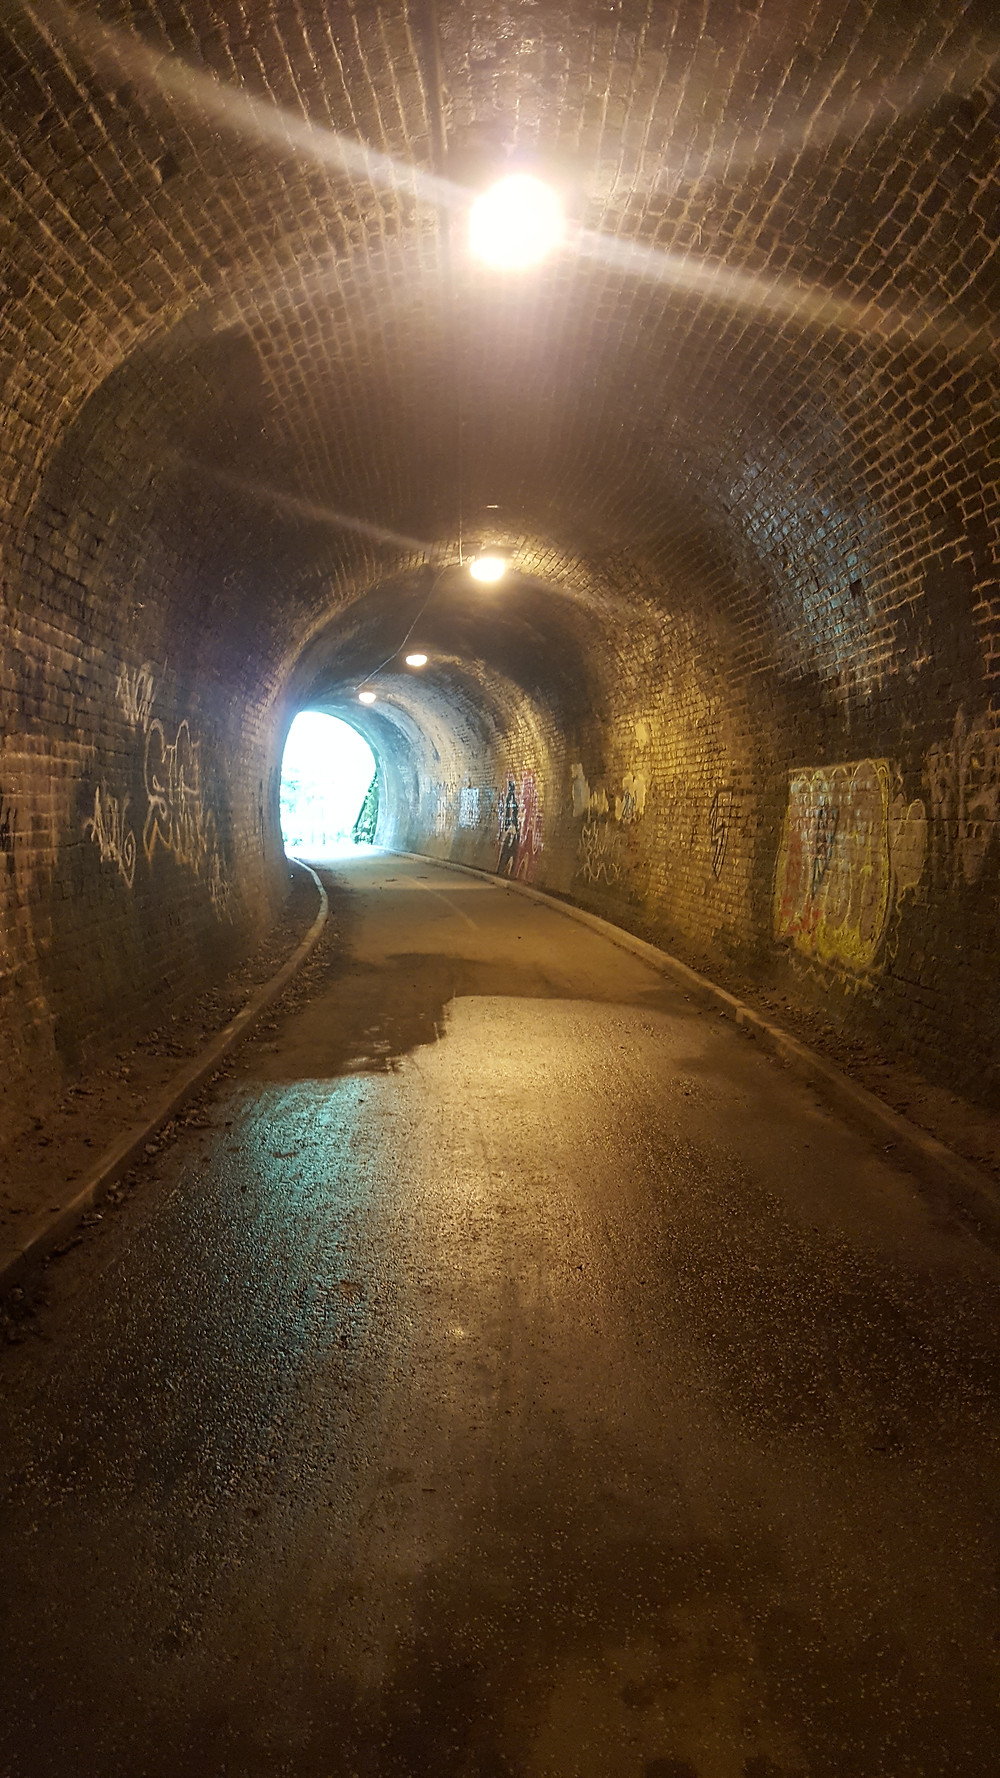 The Tunnel at Colinton, 2017.